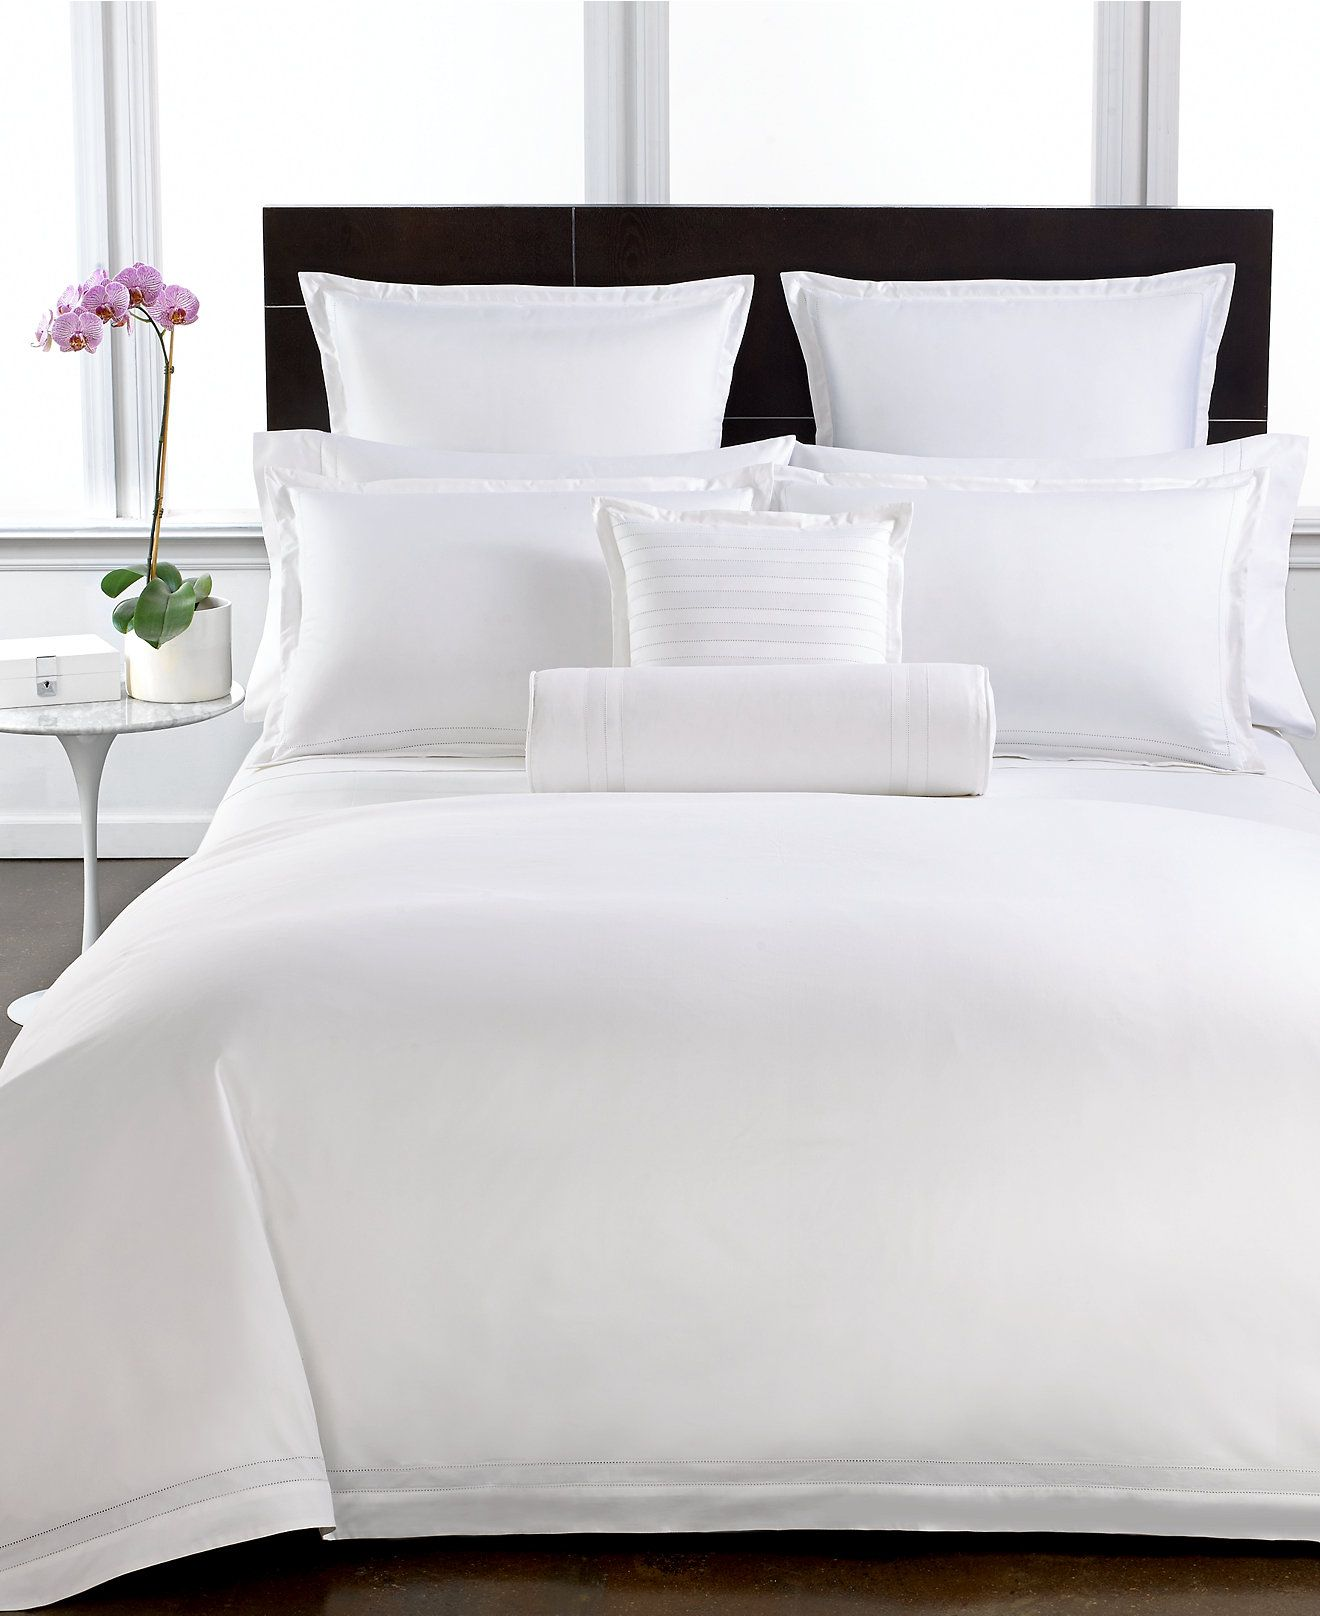 Hotel Collection 800 Thread Count Egyptian Cotton European